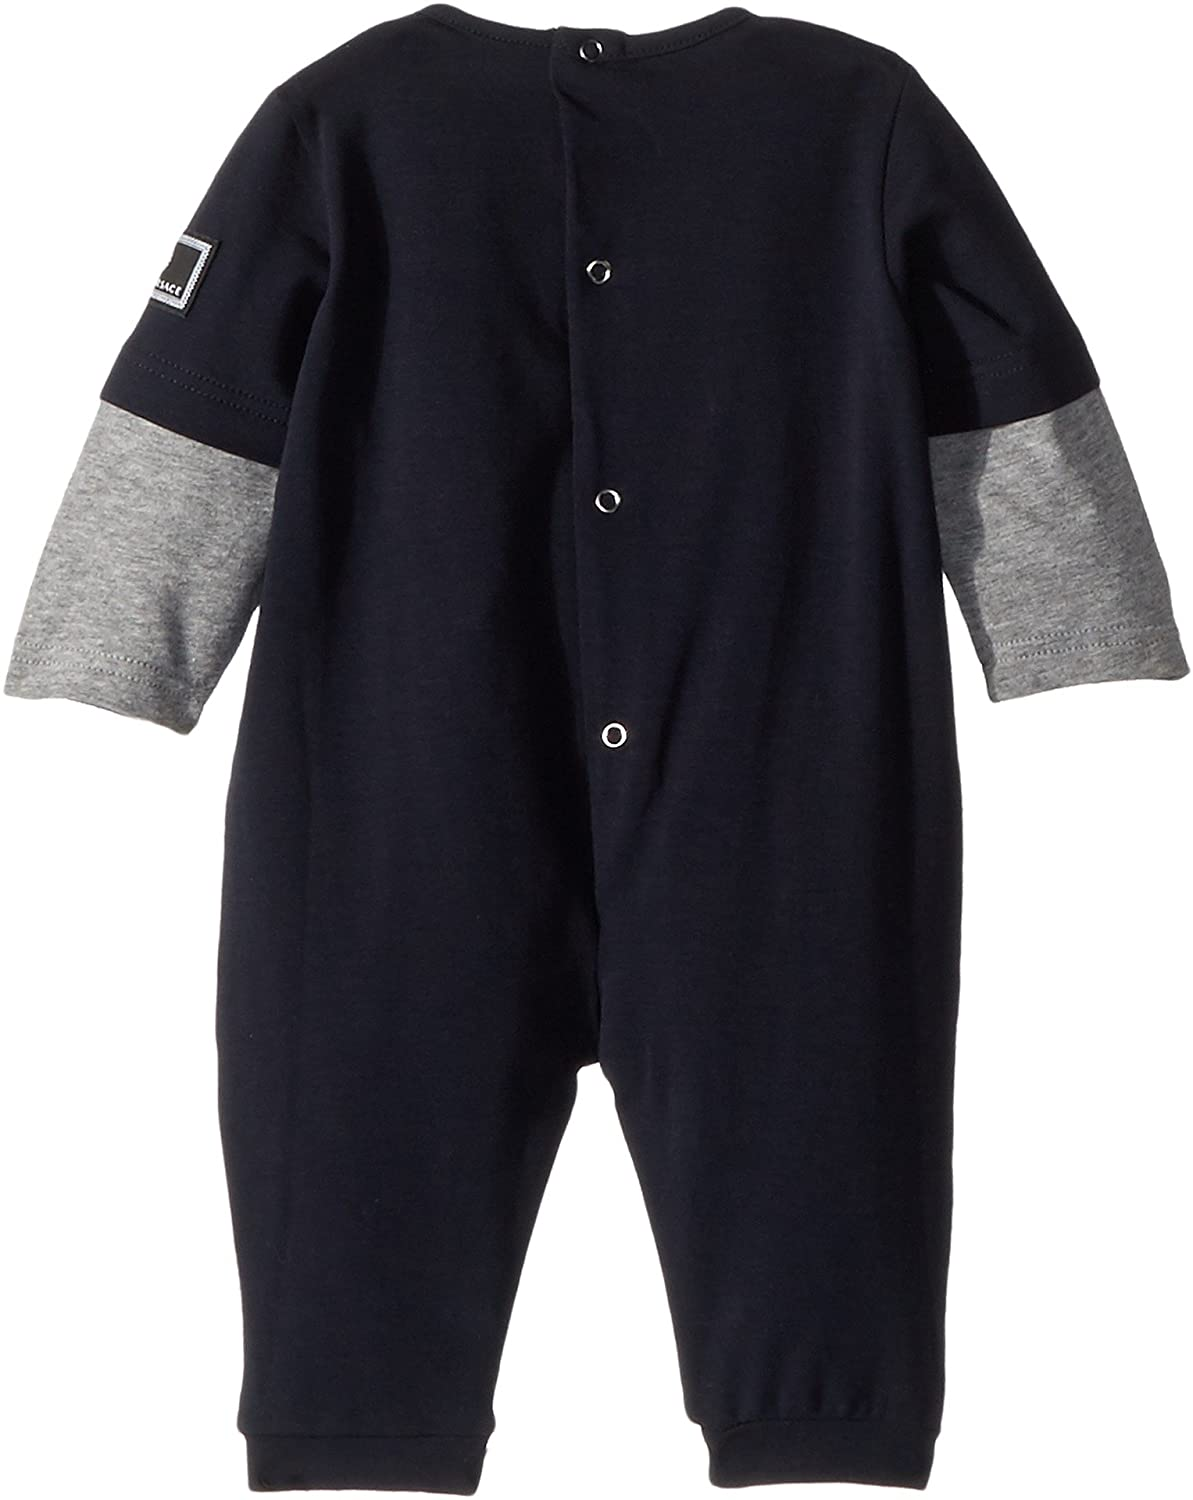 667a2851 Amazon.com: Versace Kids Baby Boy's Romper w/Car Graphic (Infant) Blue/Grey  1 Month: Clothing